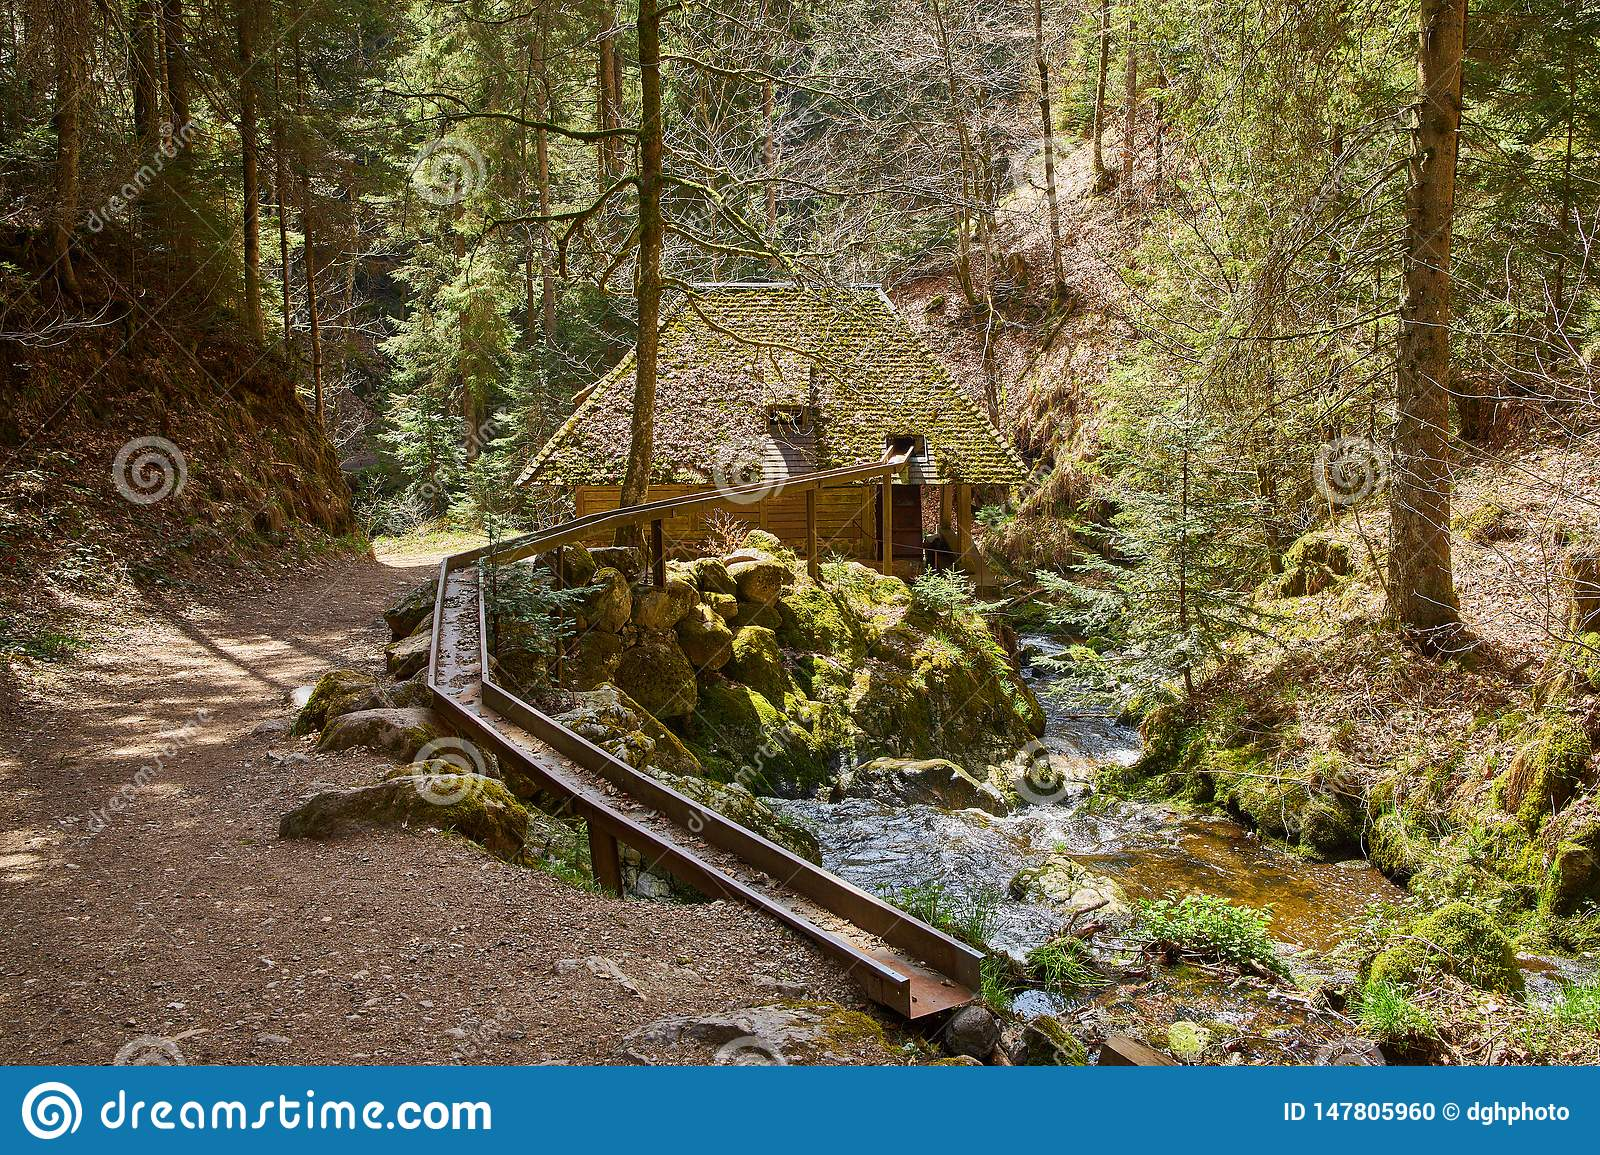 Hiking in the river ravenna canyon in the black forest in germany